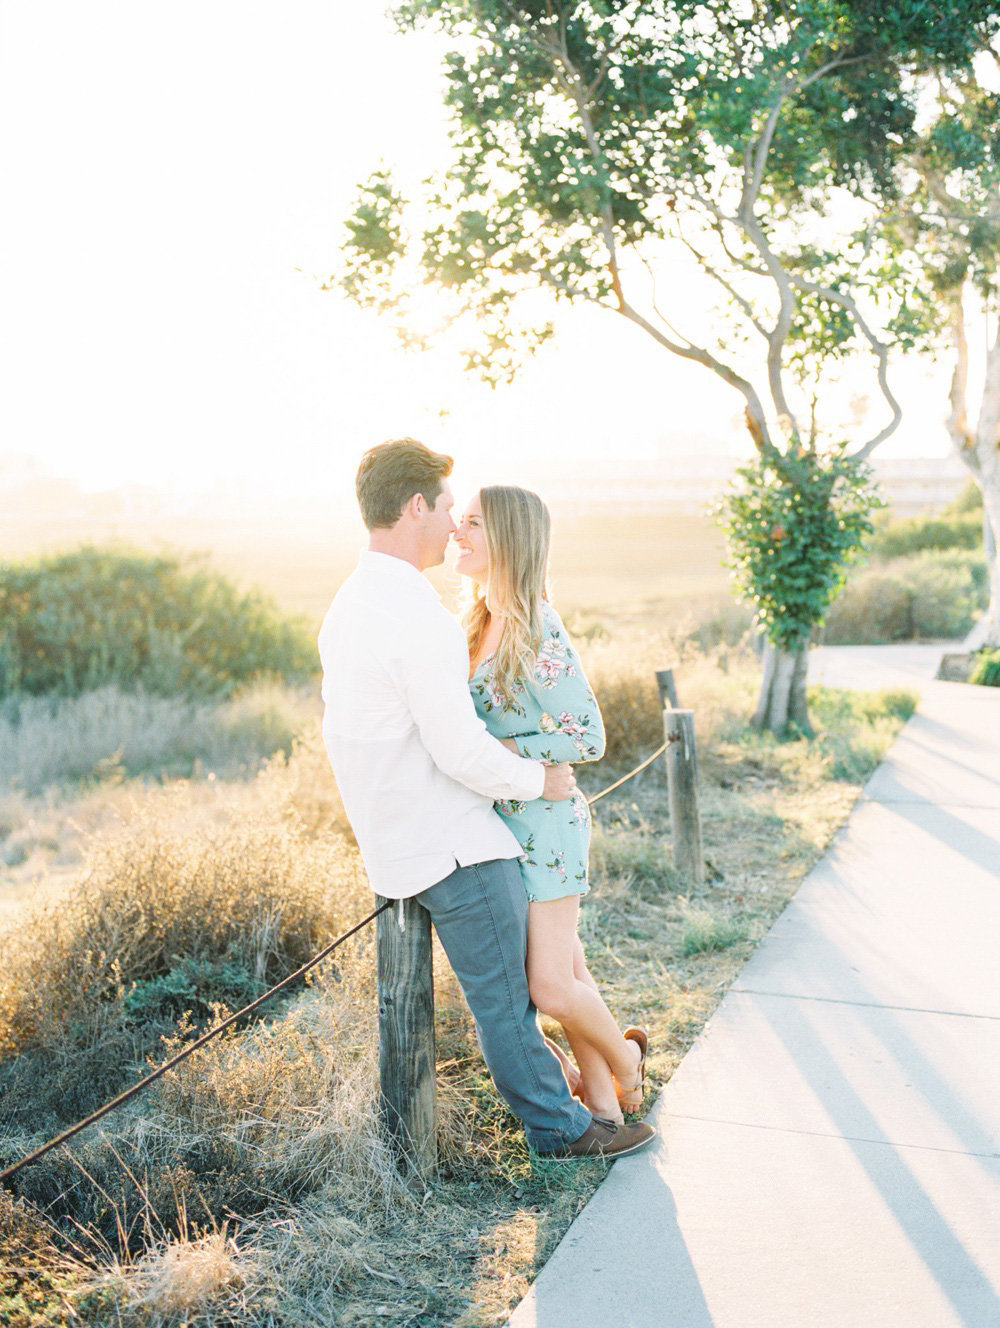 San-Diego-Engagement-Photographer-Mandy-Ford-007